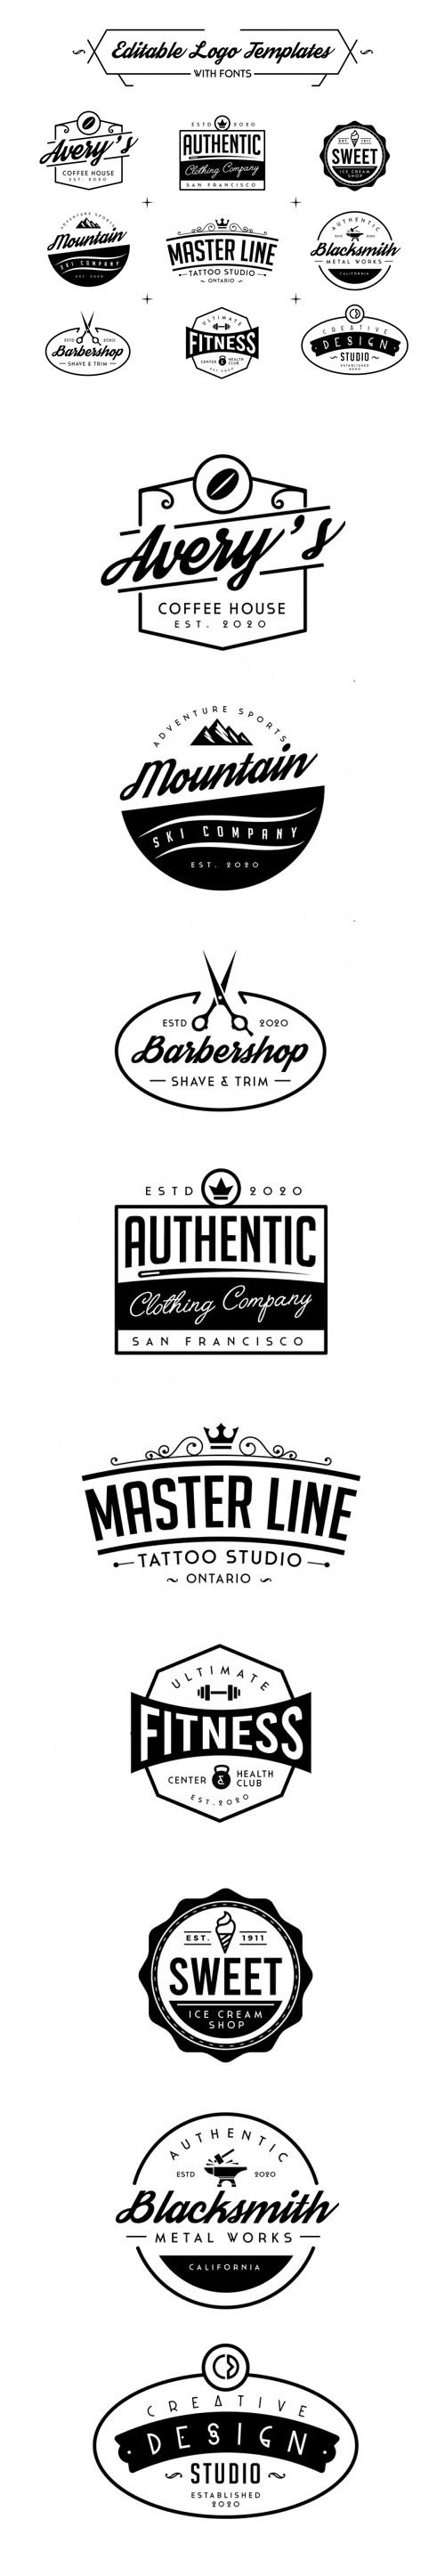 Professional & Editable Logo Templates In Vector